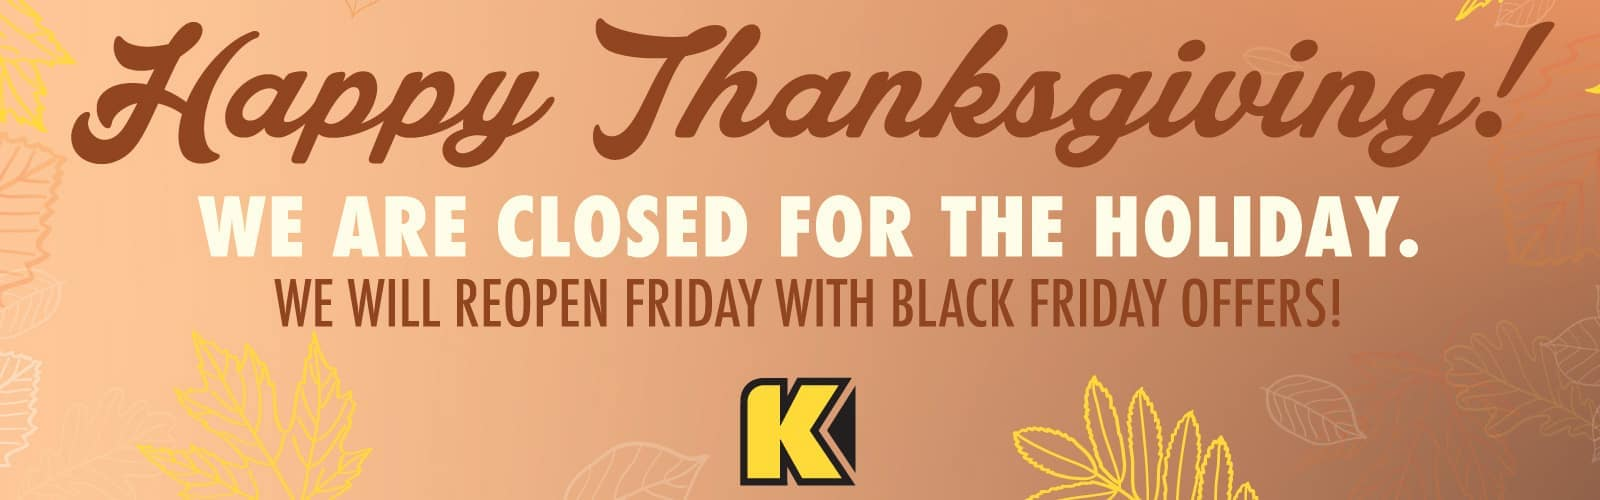 15273-kenaut-Nov19-Closed-Reopen-for-Black-Friday-Banners-1600×500